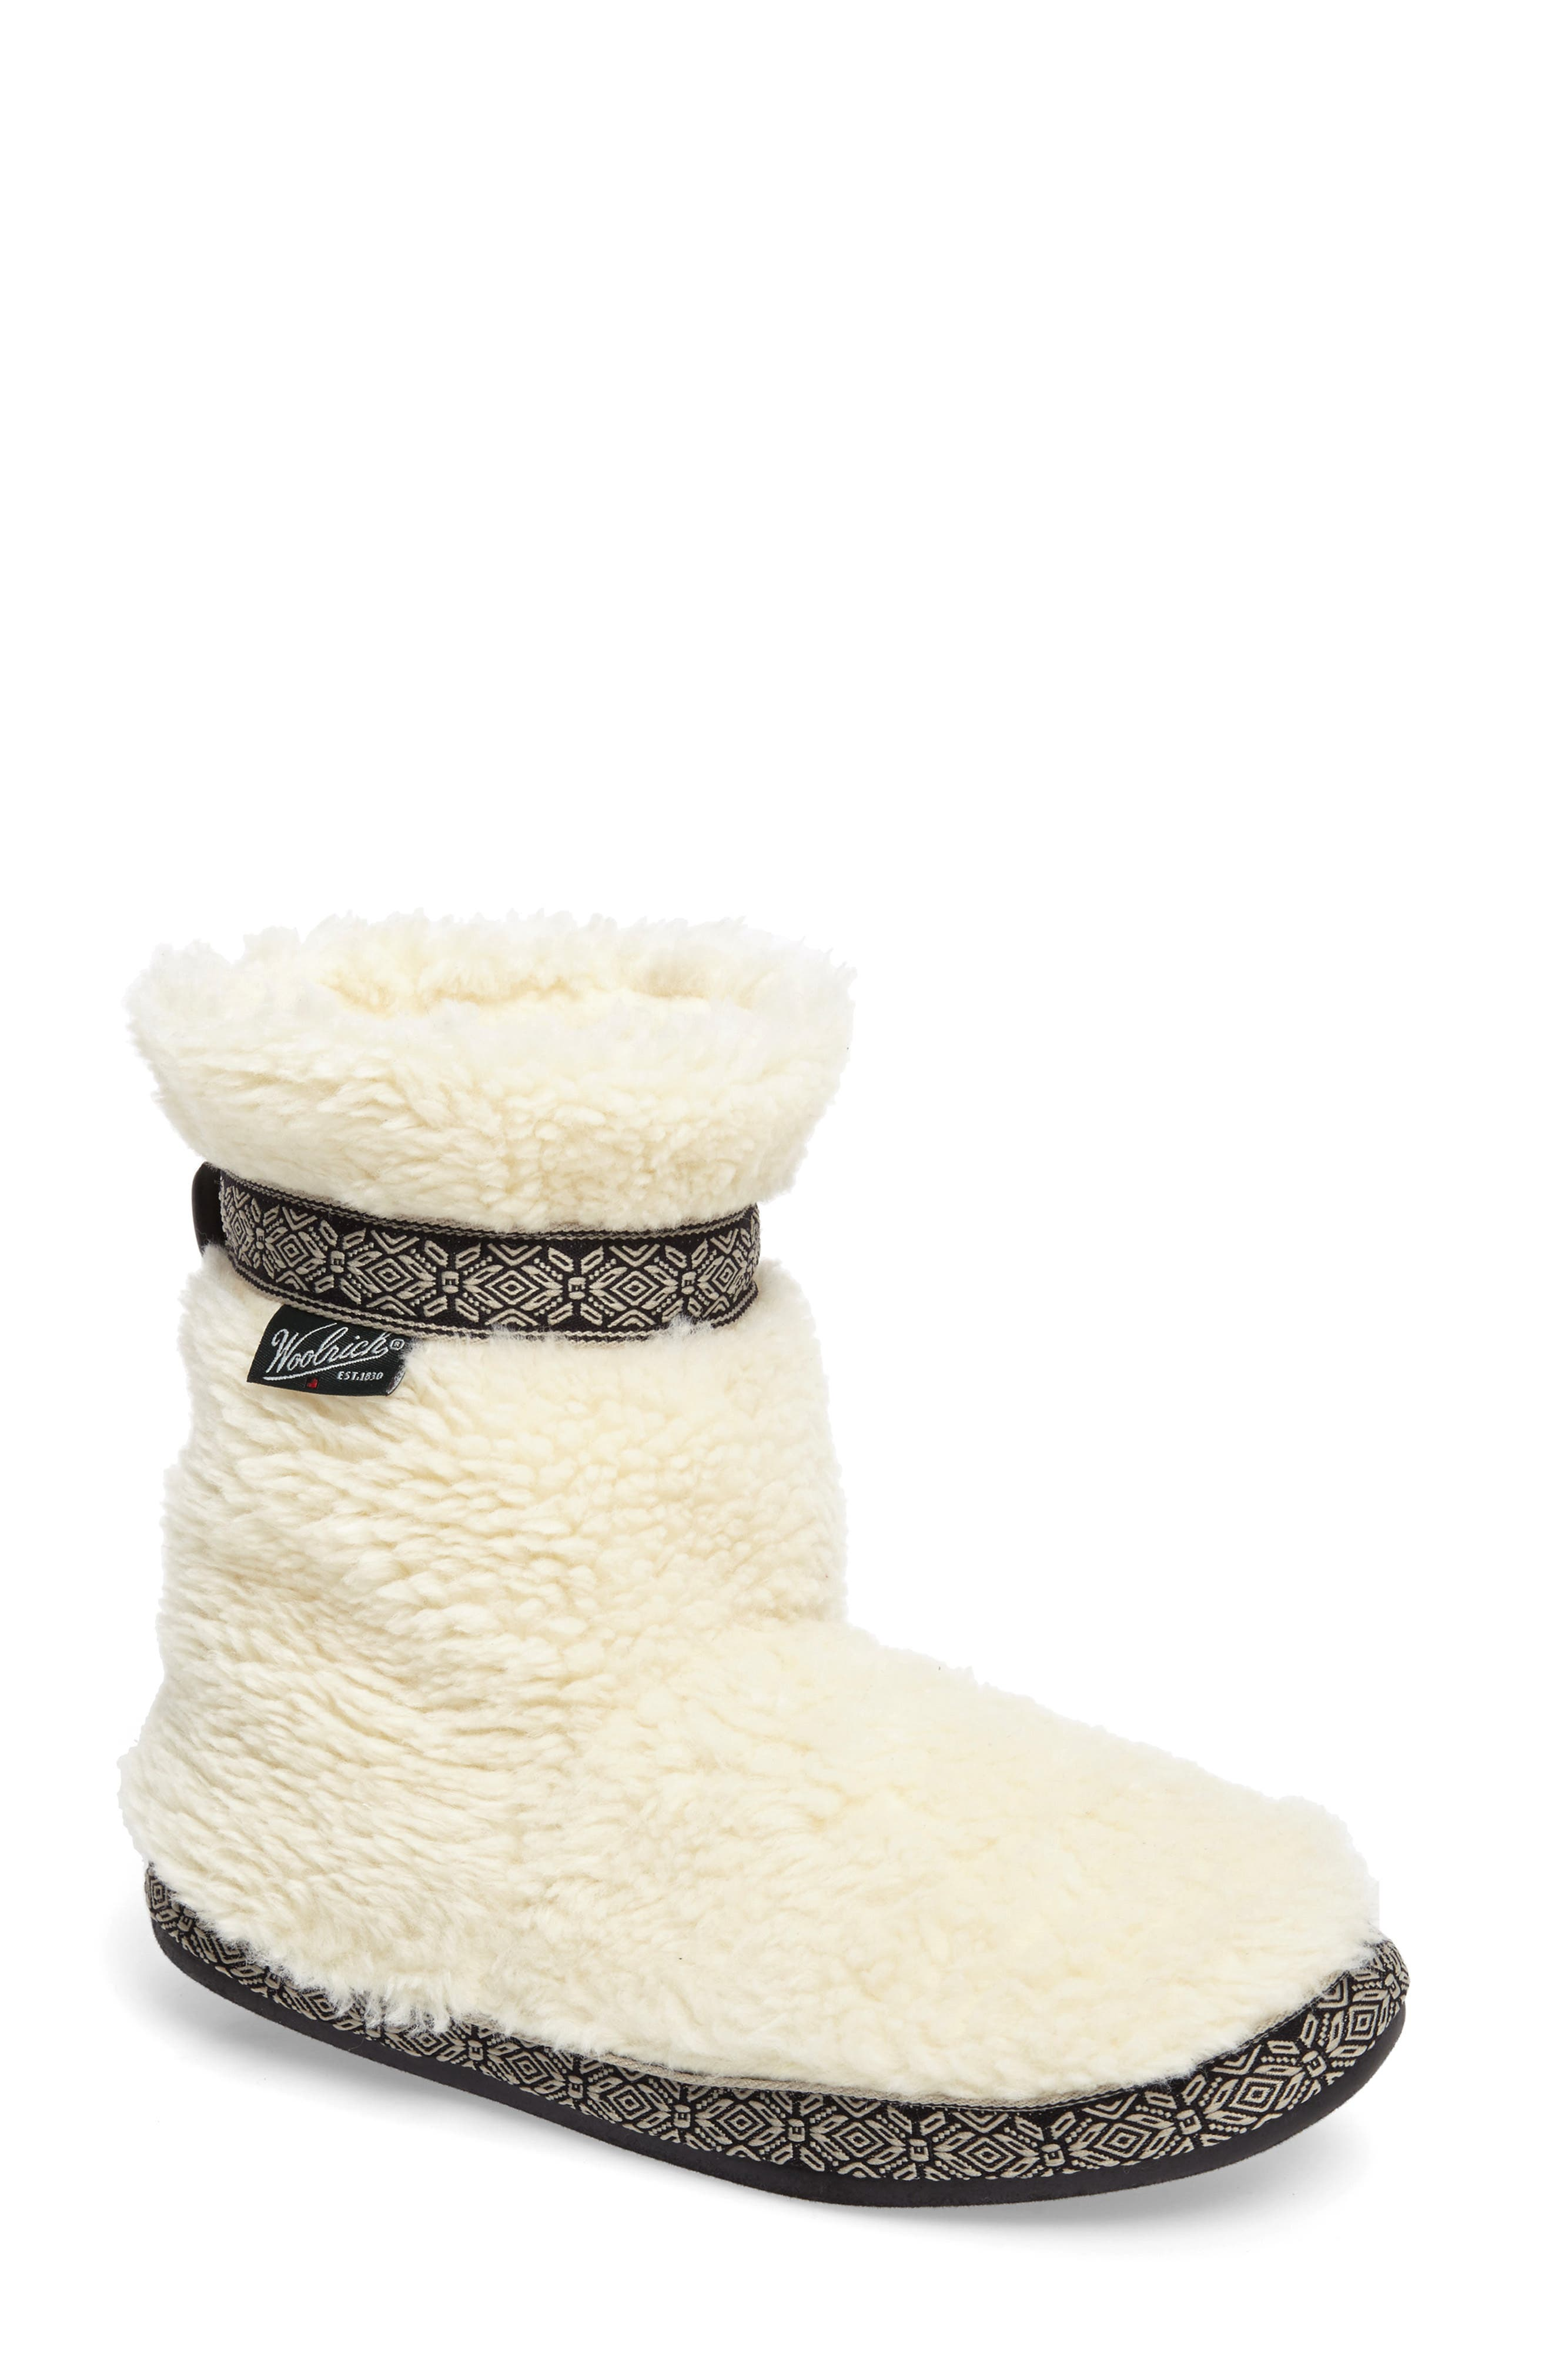 Alternate Image 1 Selected - Woolrich Whitecap Slipper Bootie (Women)